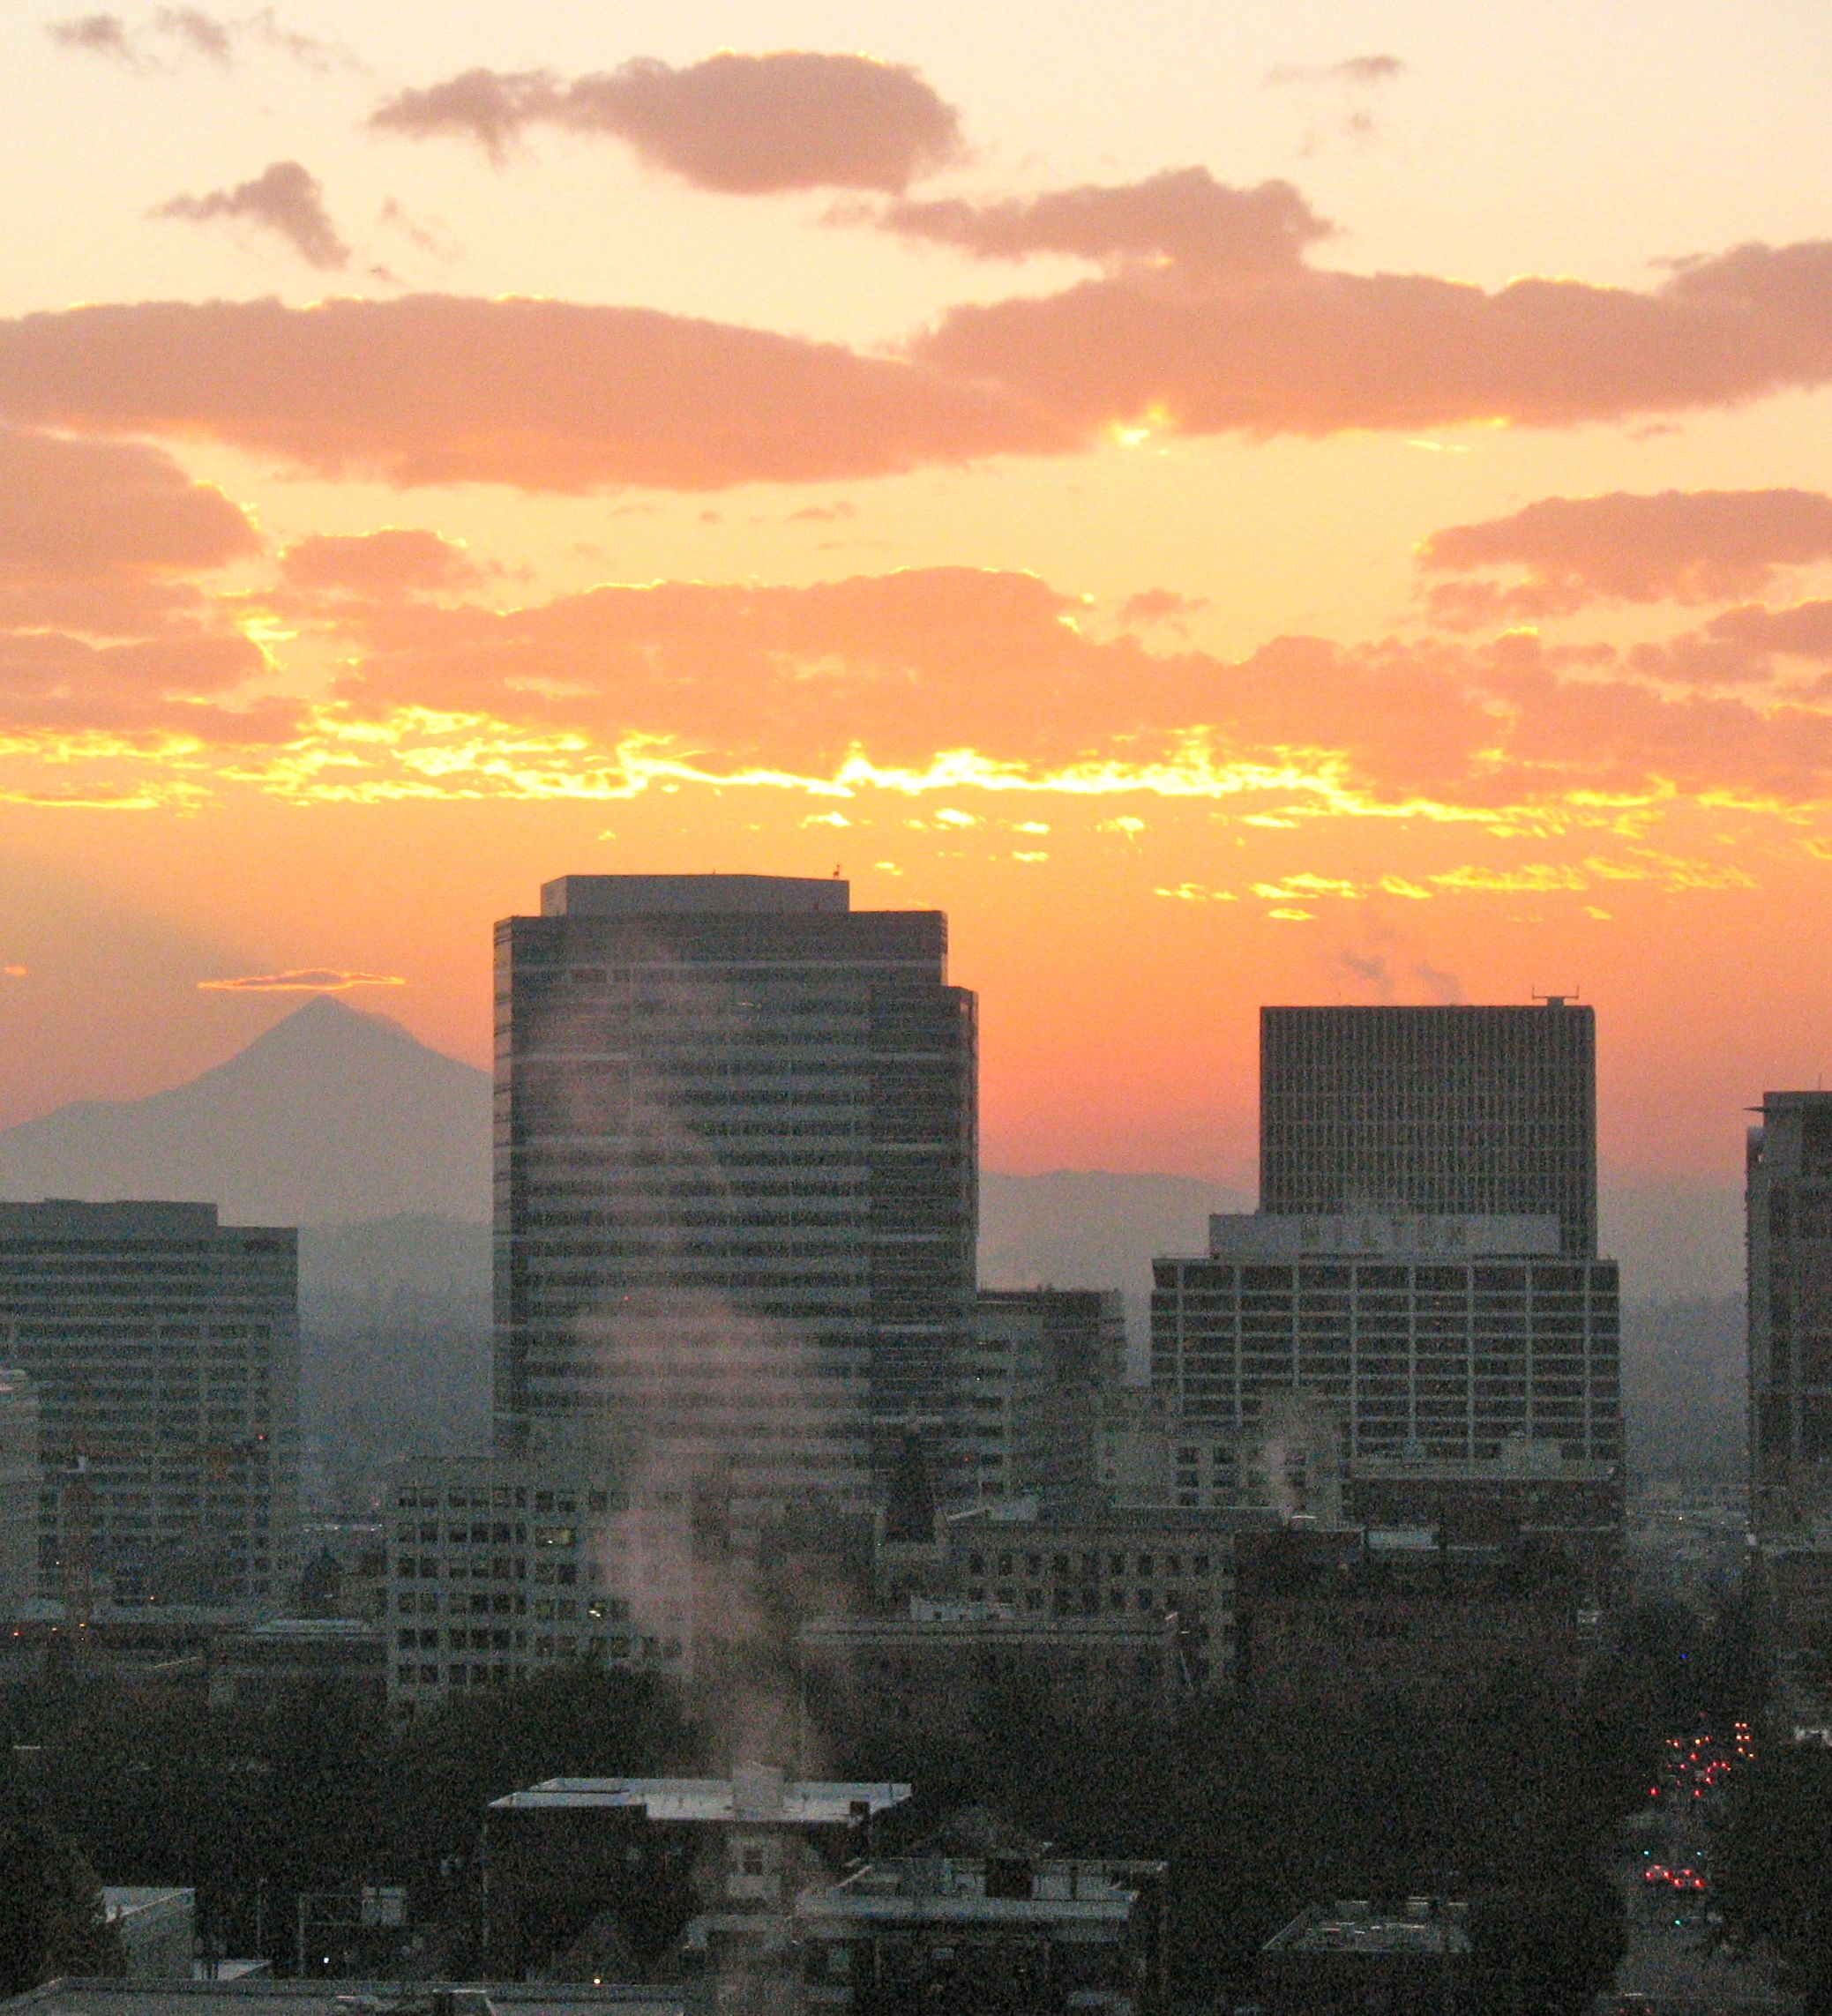 Portland is far from New York City where both my husband and I were born, butthe view from our living room is inspiring.